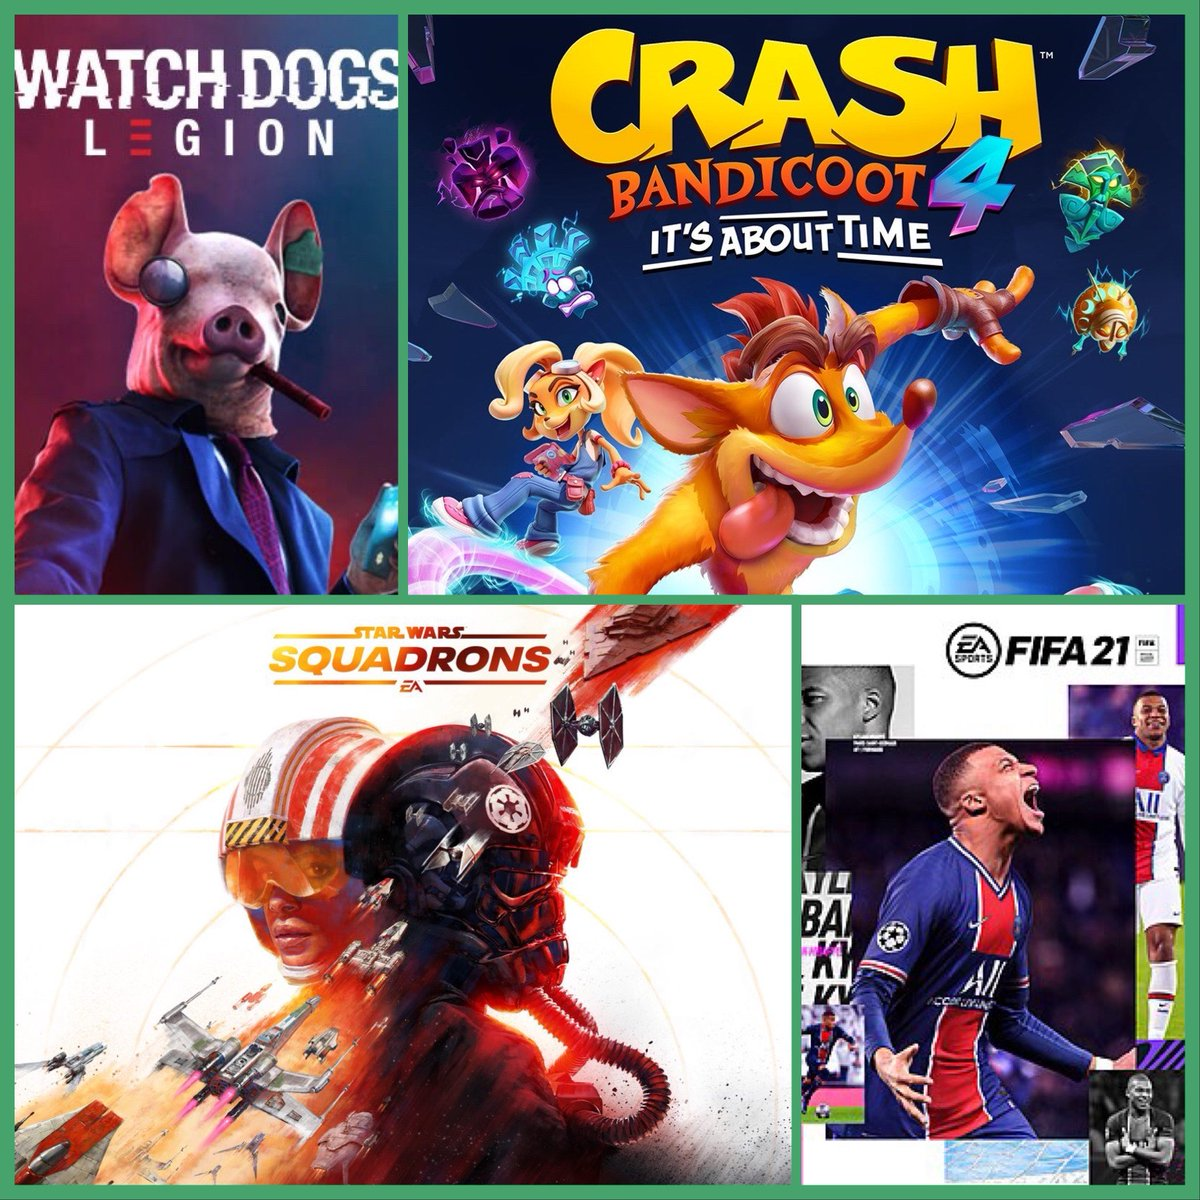 Gamers! There is still time to pre-order the games releasing in October. Pick them up from the store or have them shipped to you; pre-order with us to make sure you get your copy! #watchdogslegion #crash4 #starwarssquadrons #fifa21 https://t.co/8u5wLr50I3